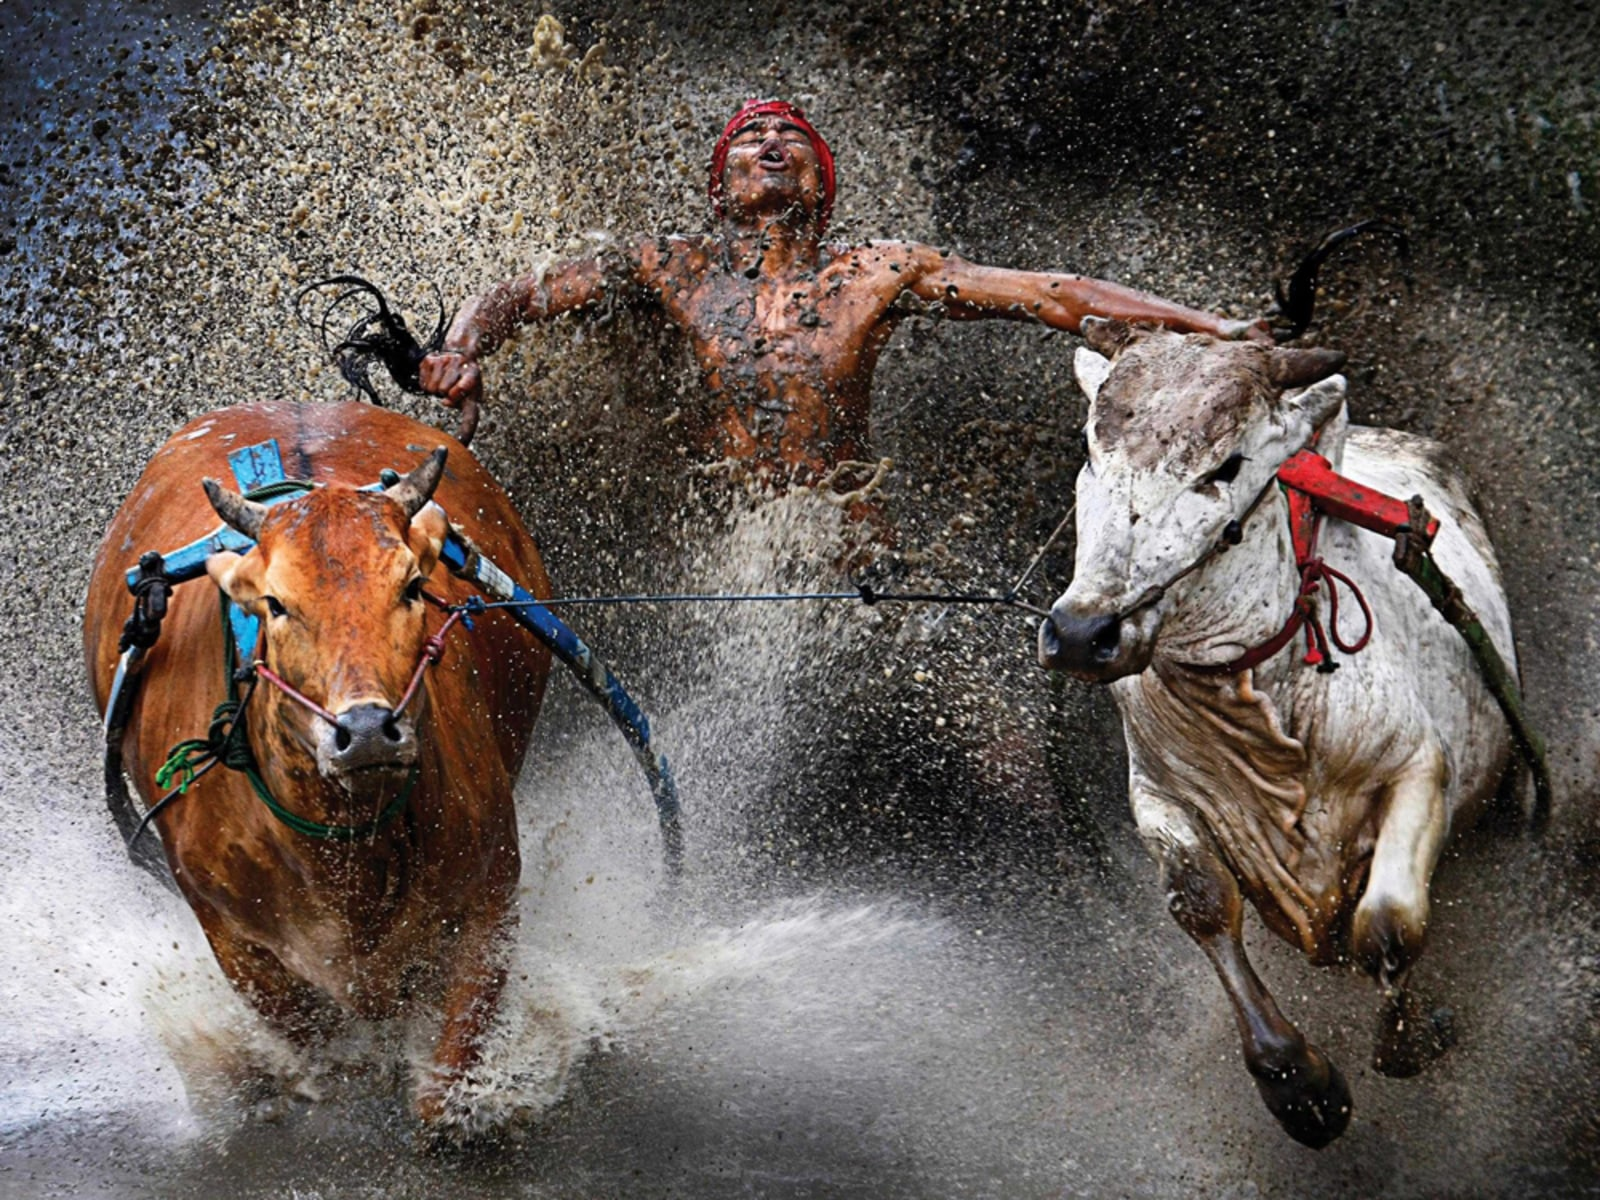 Image: A photo of an Indonesian jockey won 1st prize in the Sports Action Single category.